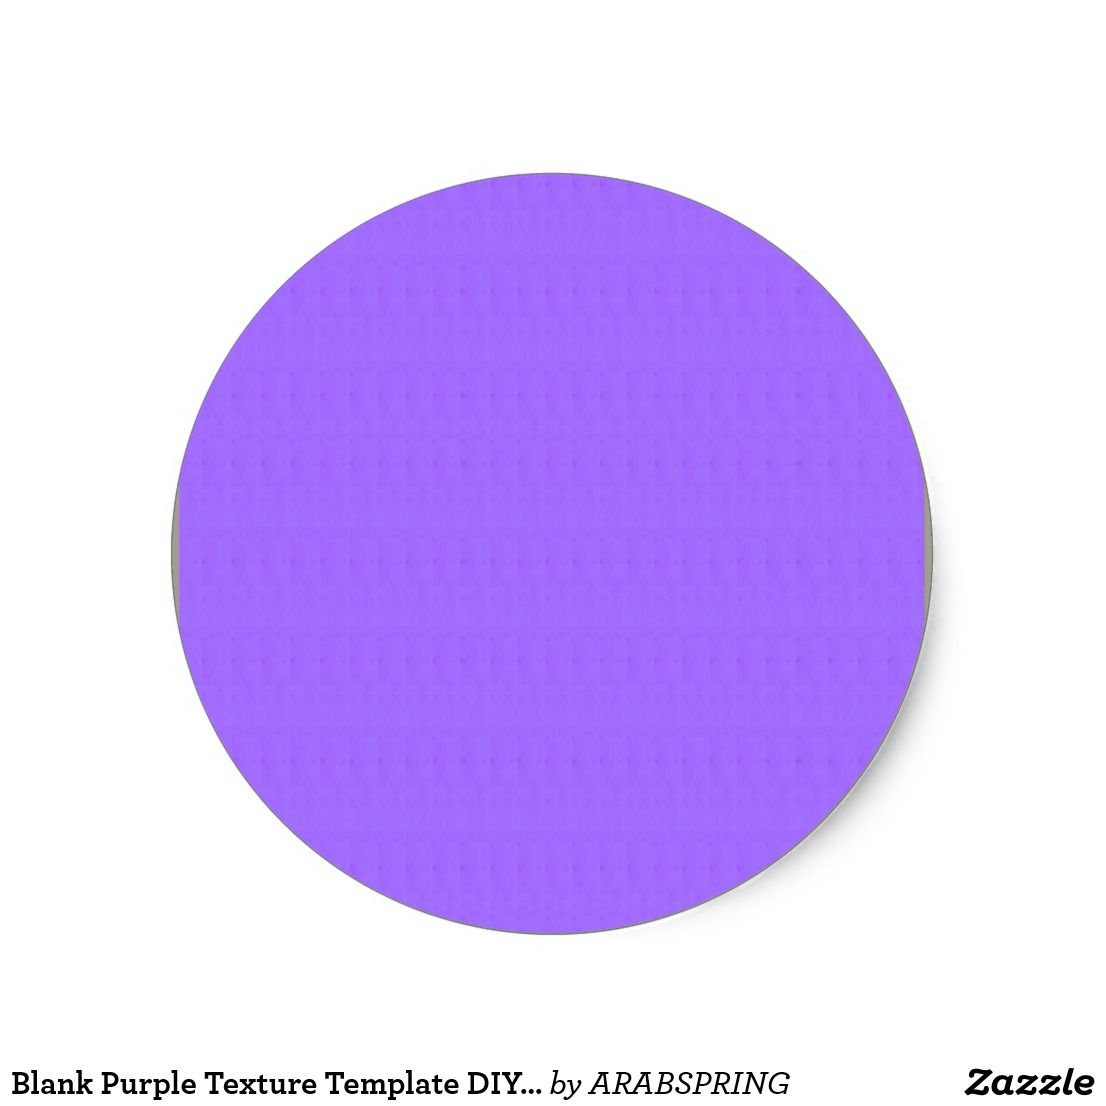 blank purple texture template diy add text image classic round